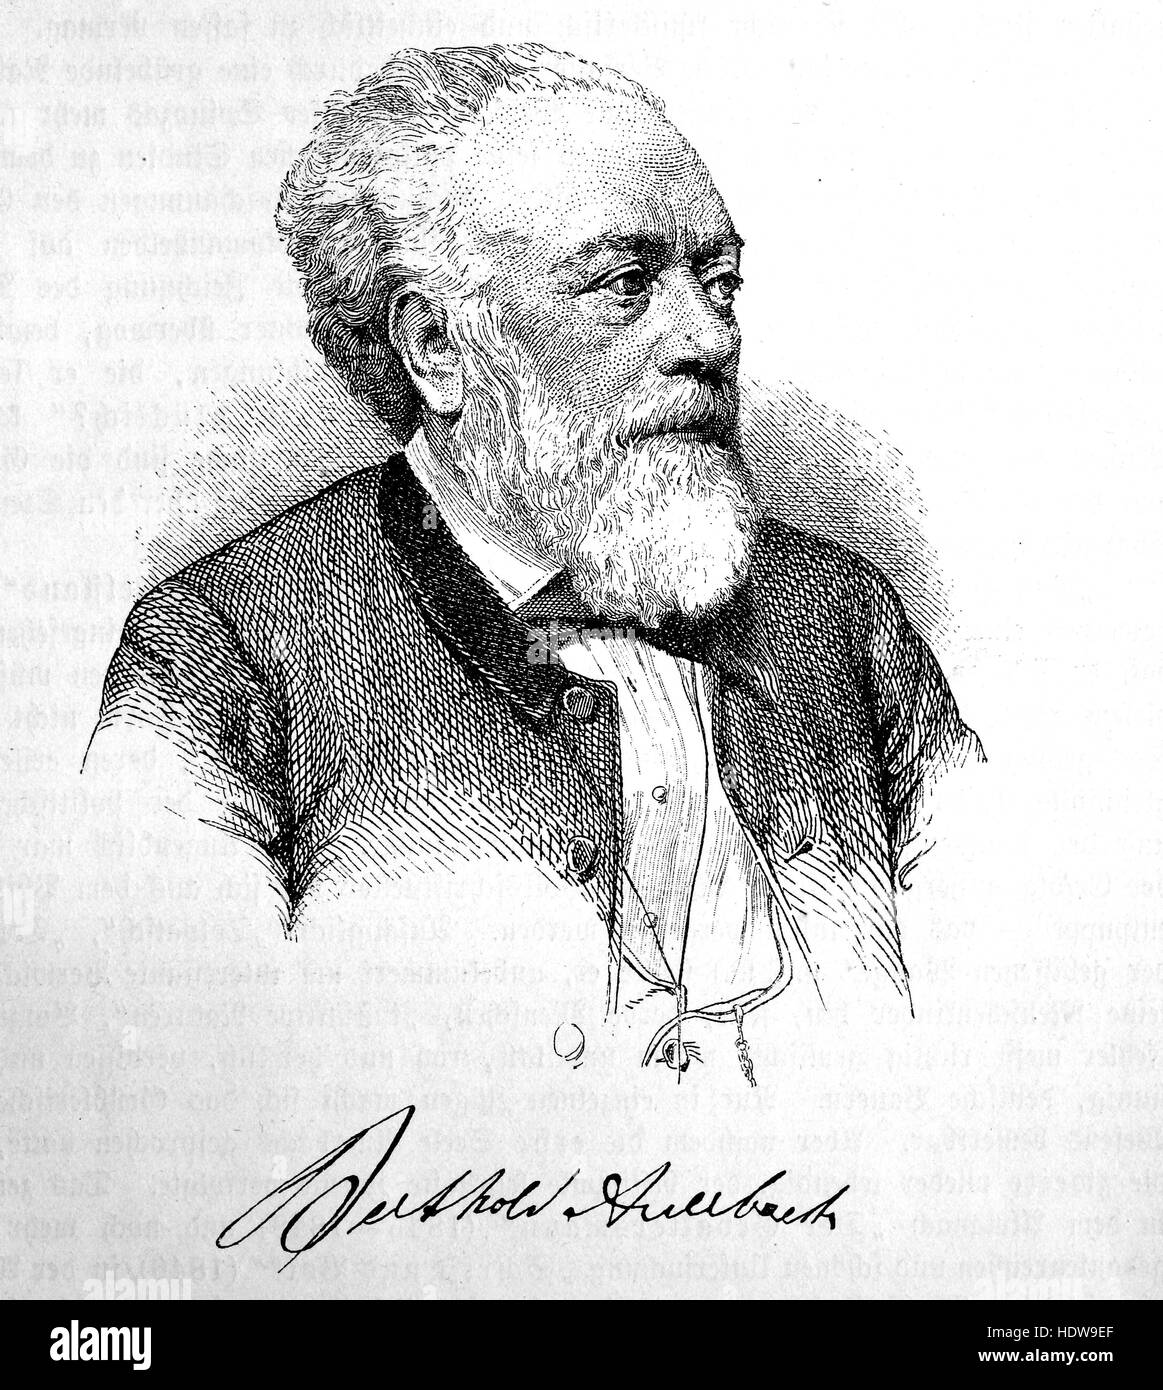 Berthold Auerbach, 1812-1882, a German-Jewish poet and author, woodcut from the year 1880 - Stock Image